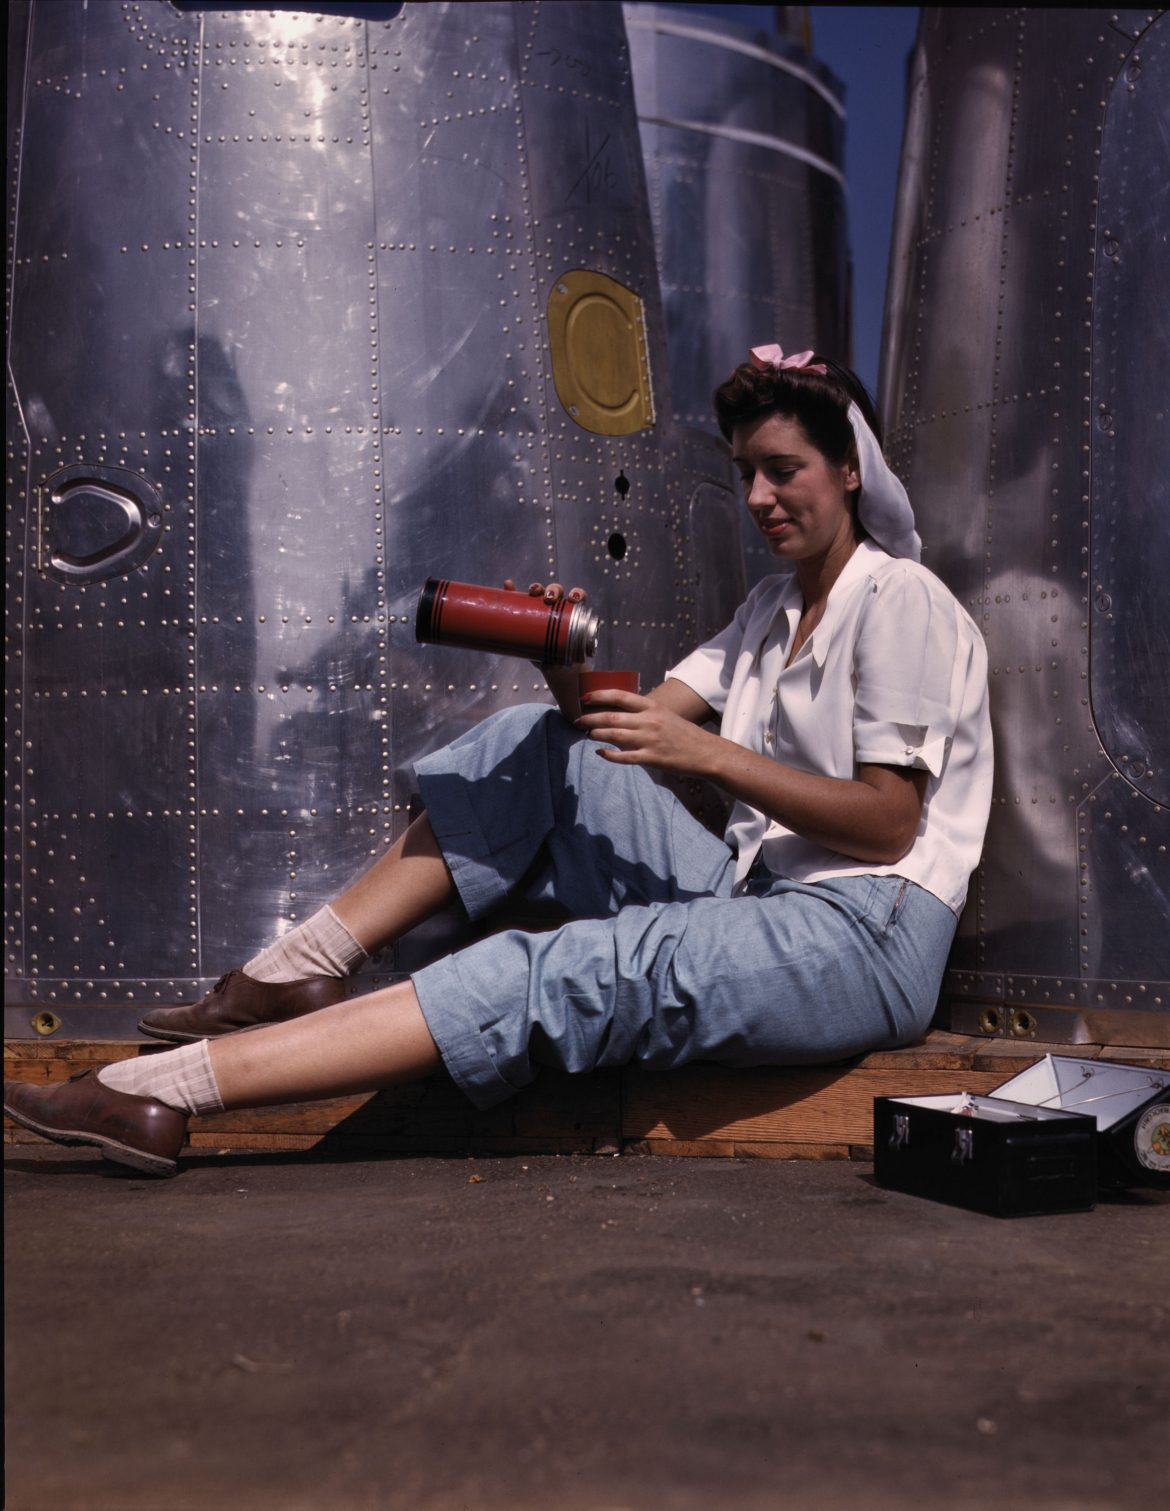 Worker Takes Lunch Break at Douglas Aircraft Company